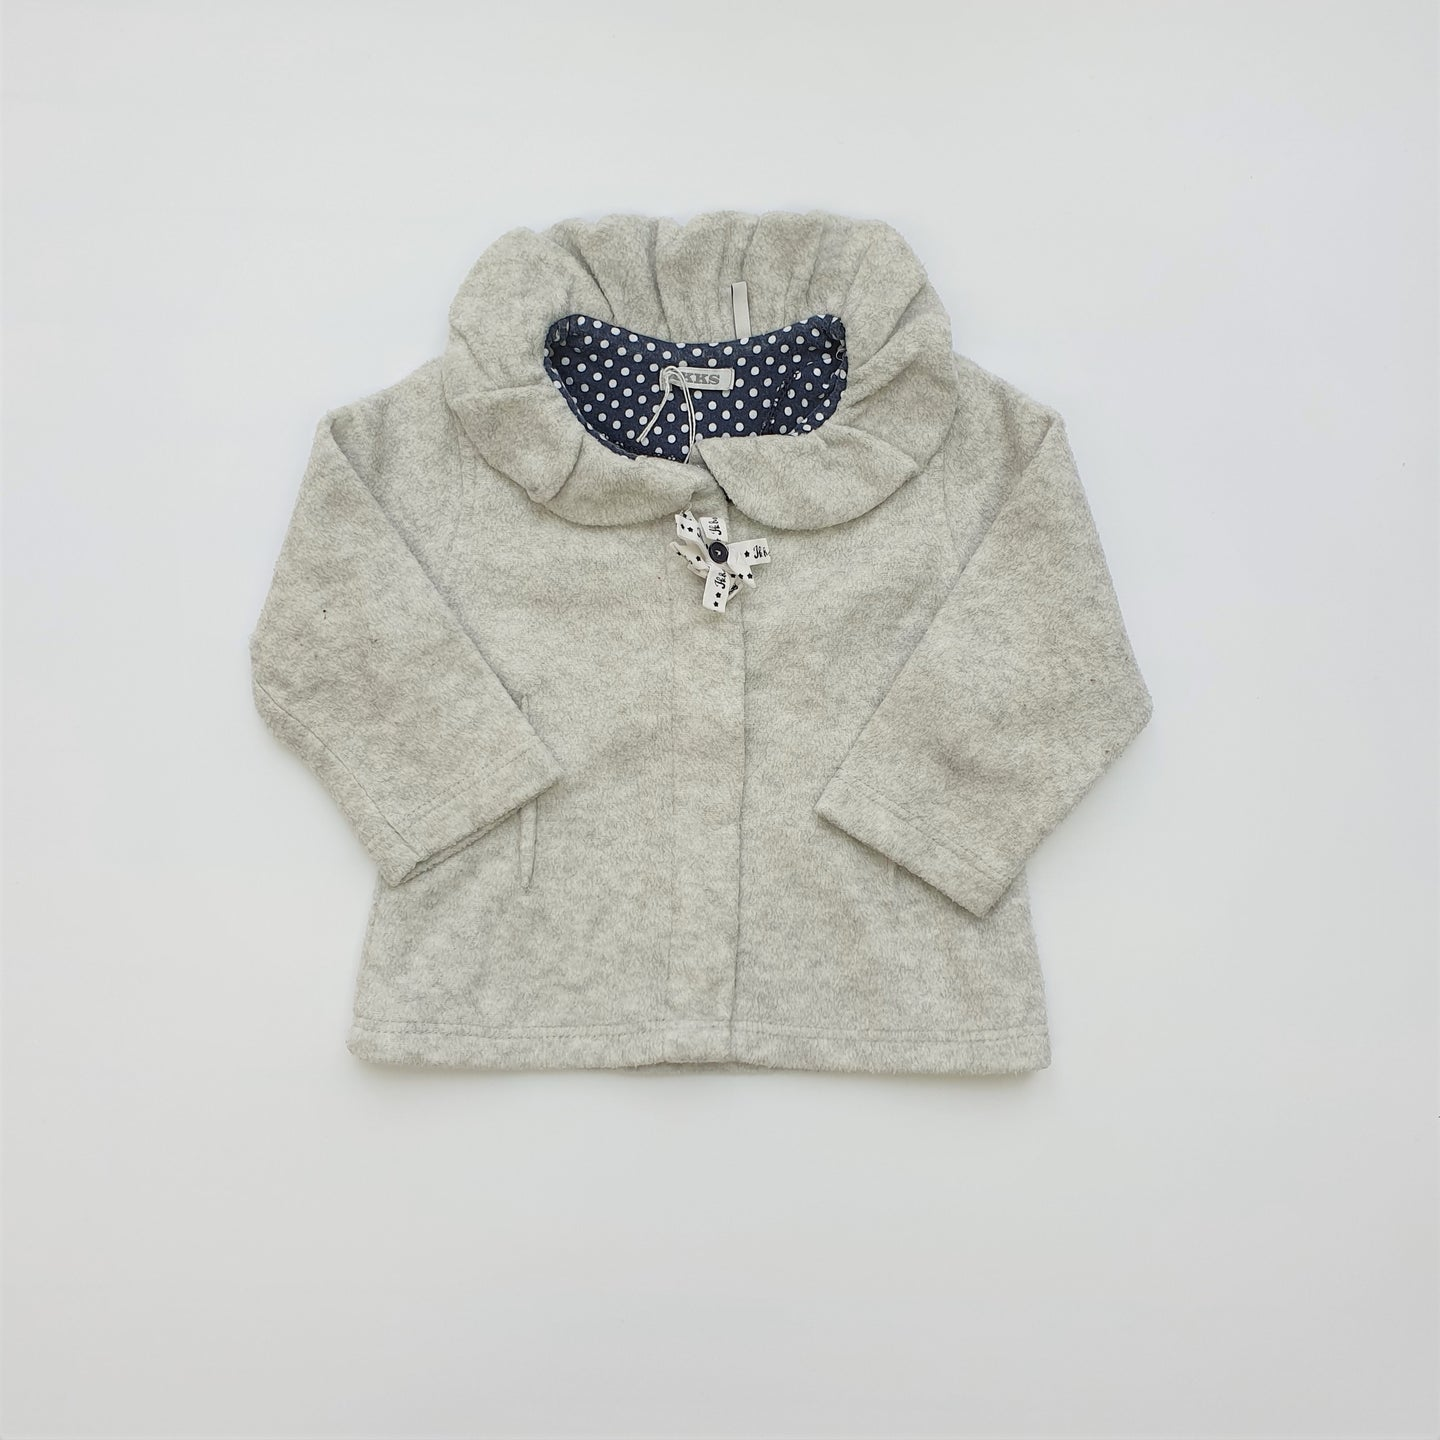 IKKS girl grey vest 12m